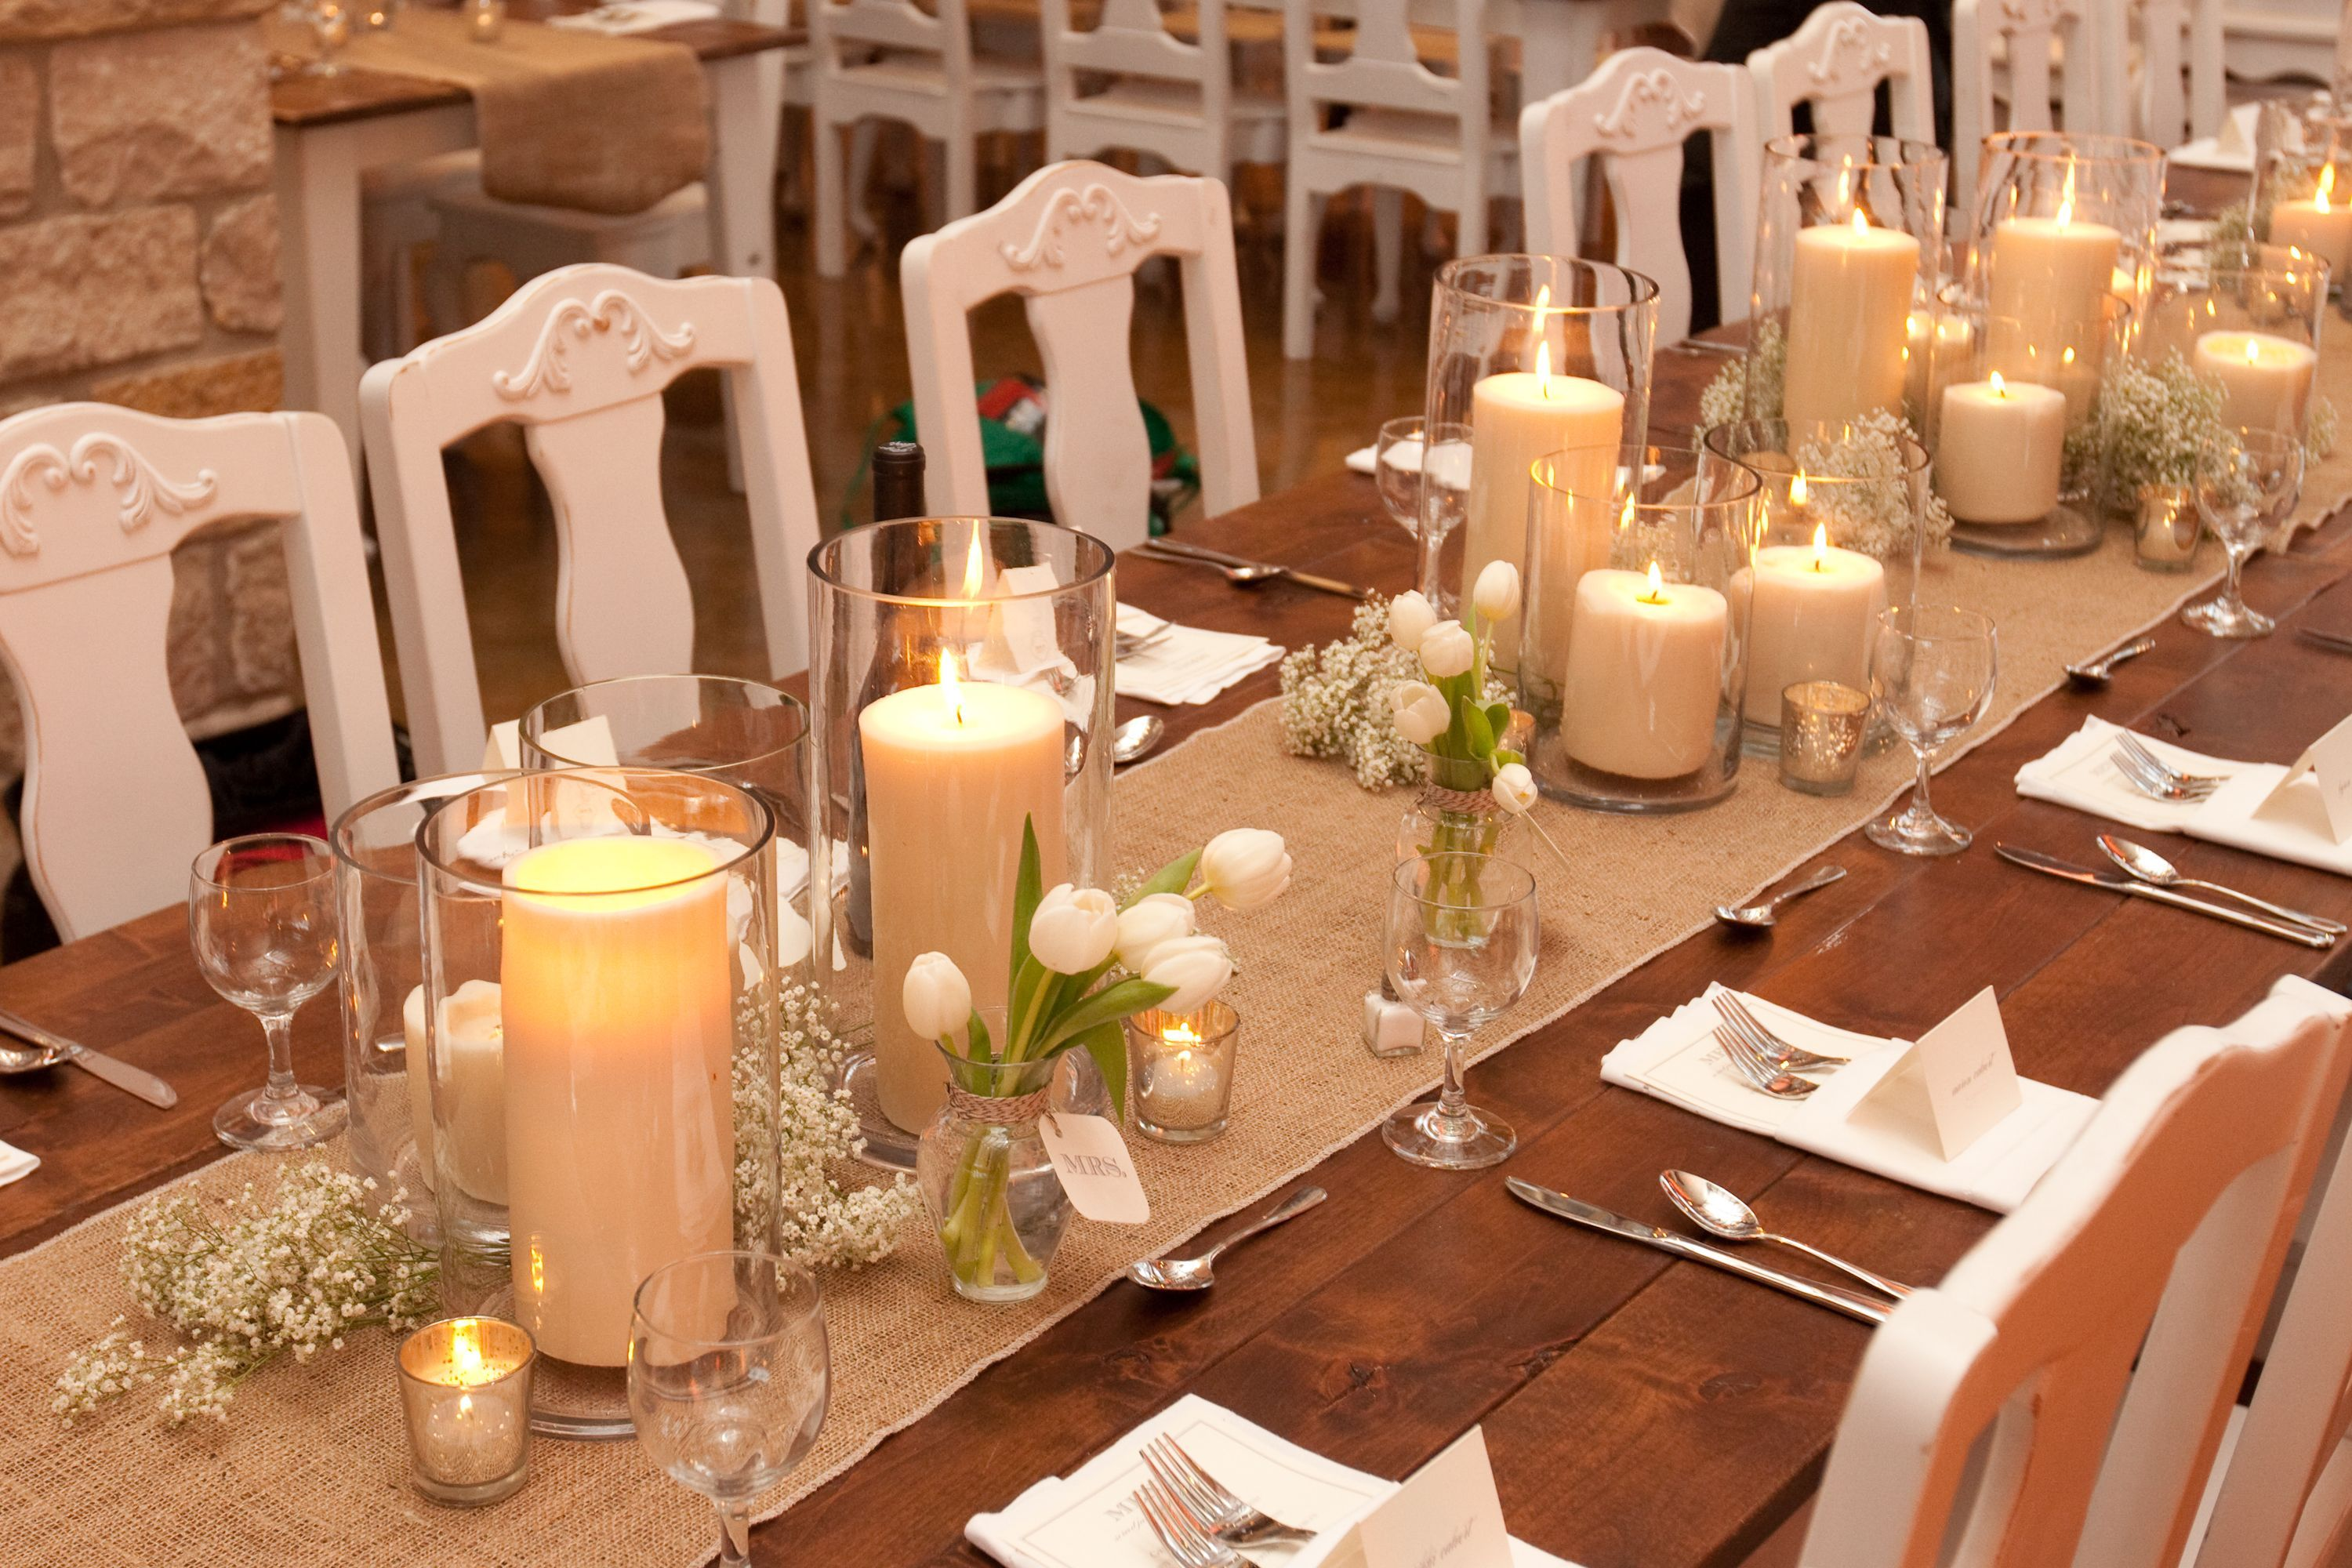 The Long Tables Will Have Pillar Candles In Vases At